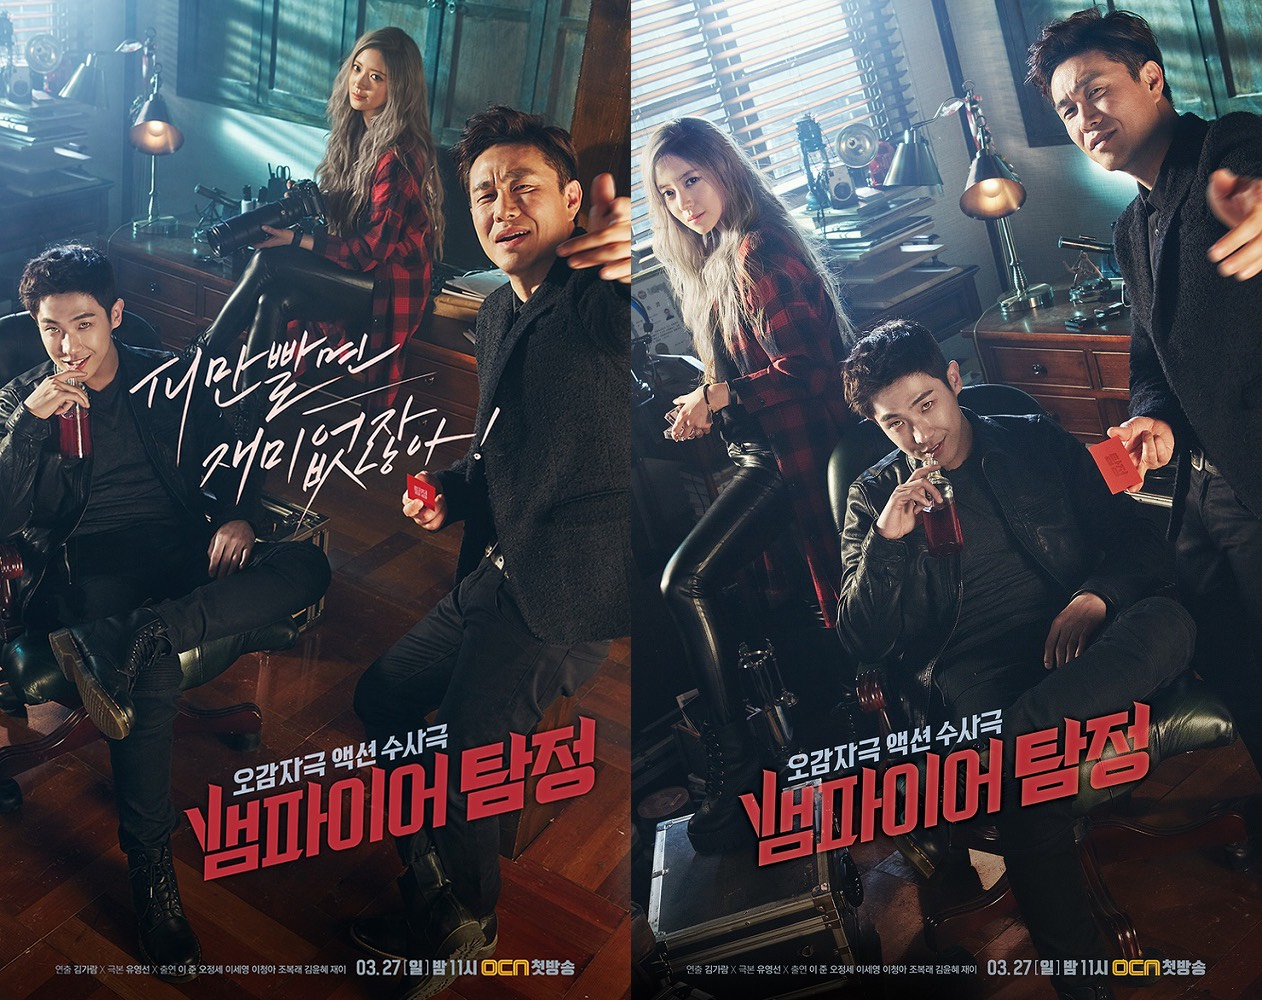 First teaser posters and teaser trailer for OCN drama series